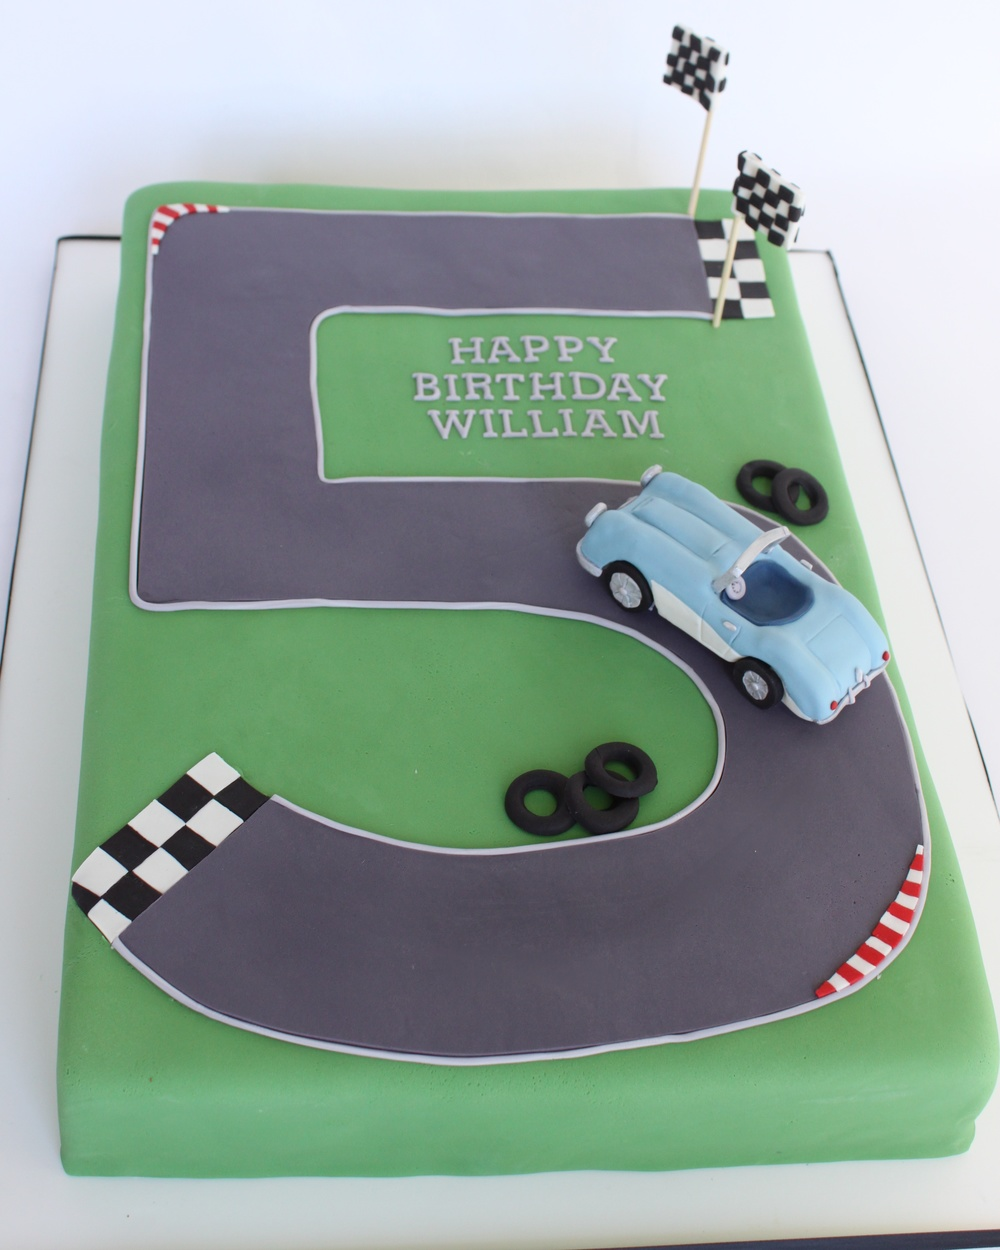 Austin Healey Birthday cake v2 7721.jpg